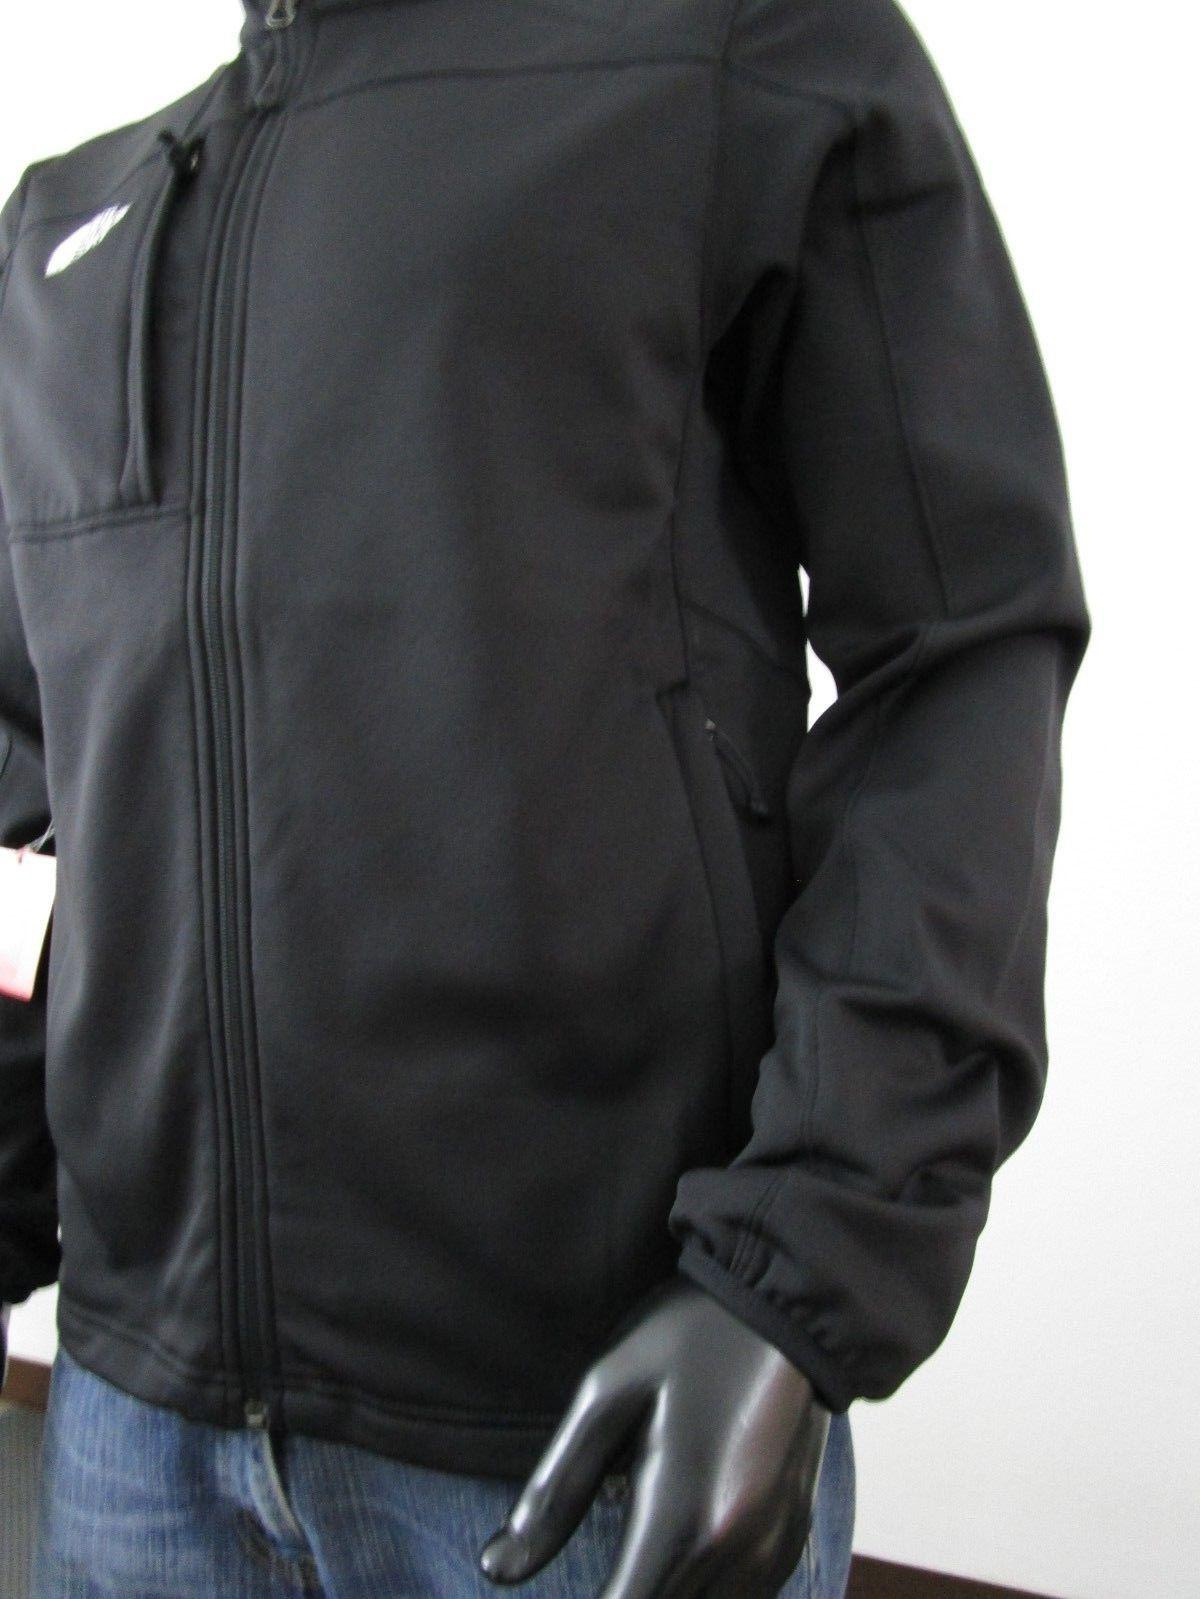 UPDATED Mens TNF North Face 200 Black